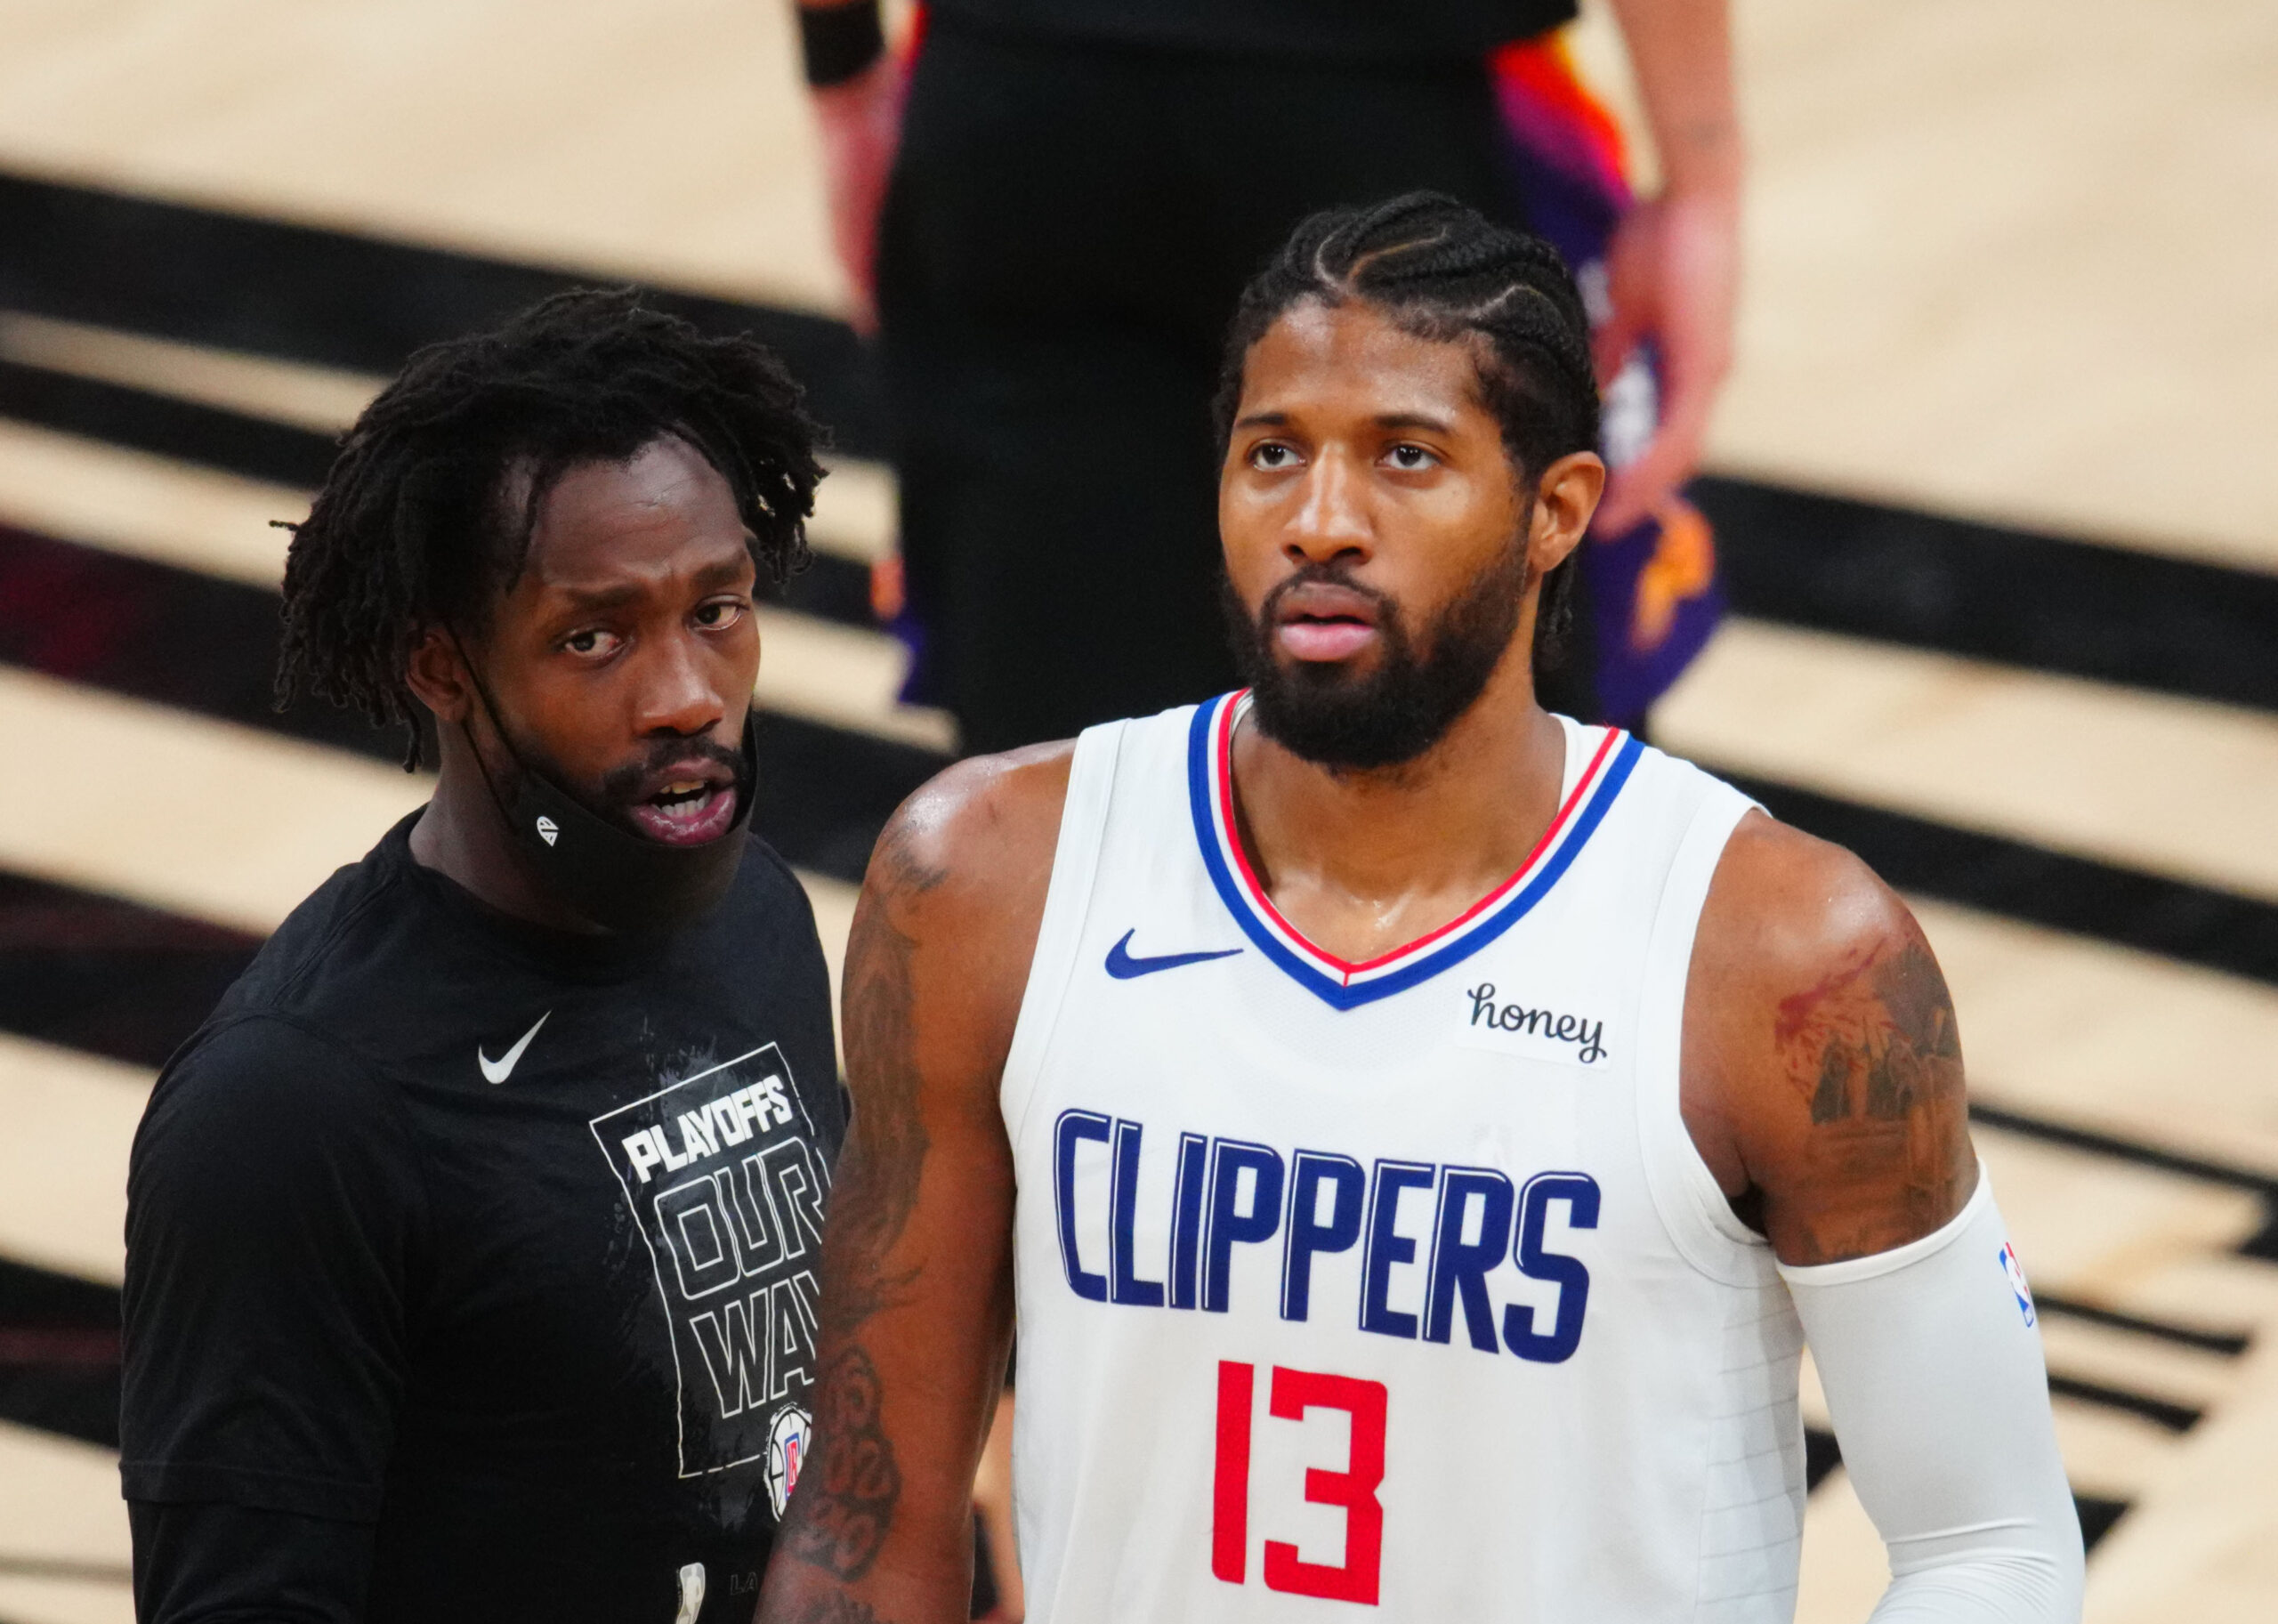 Clippers hardly daunted by 1-0 hole after prior series comebacks